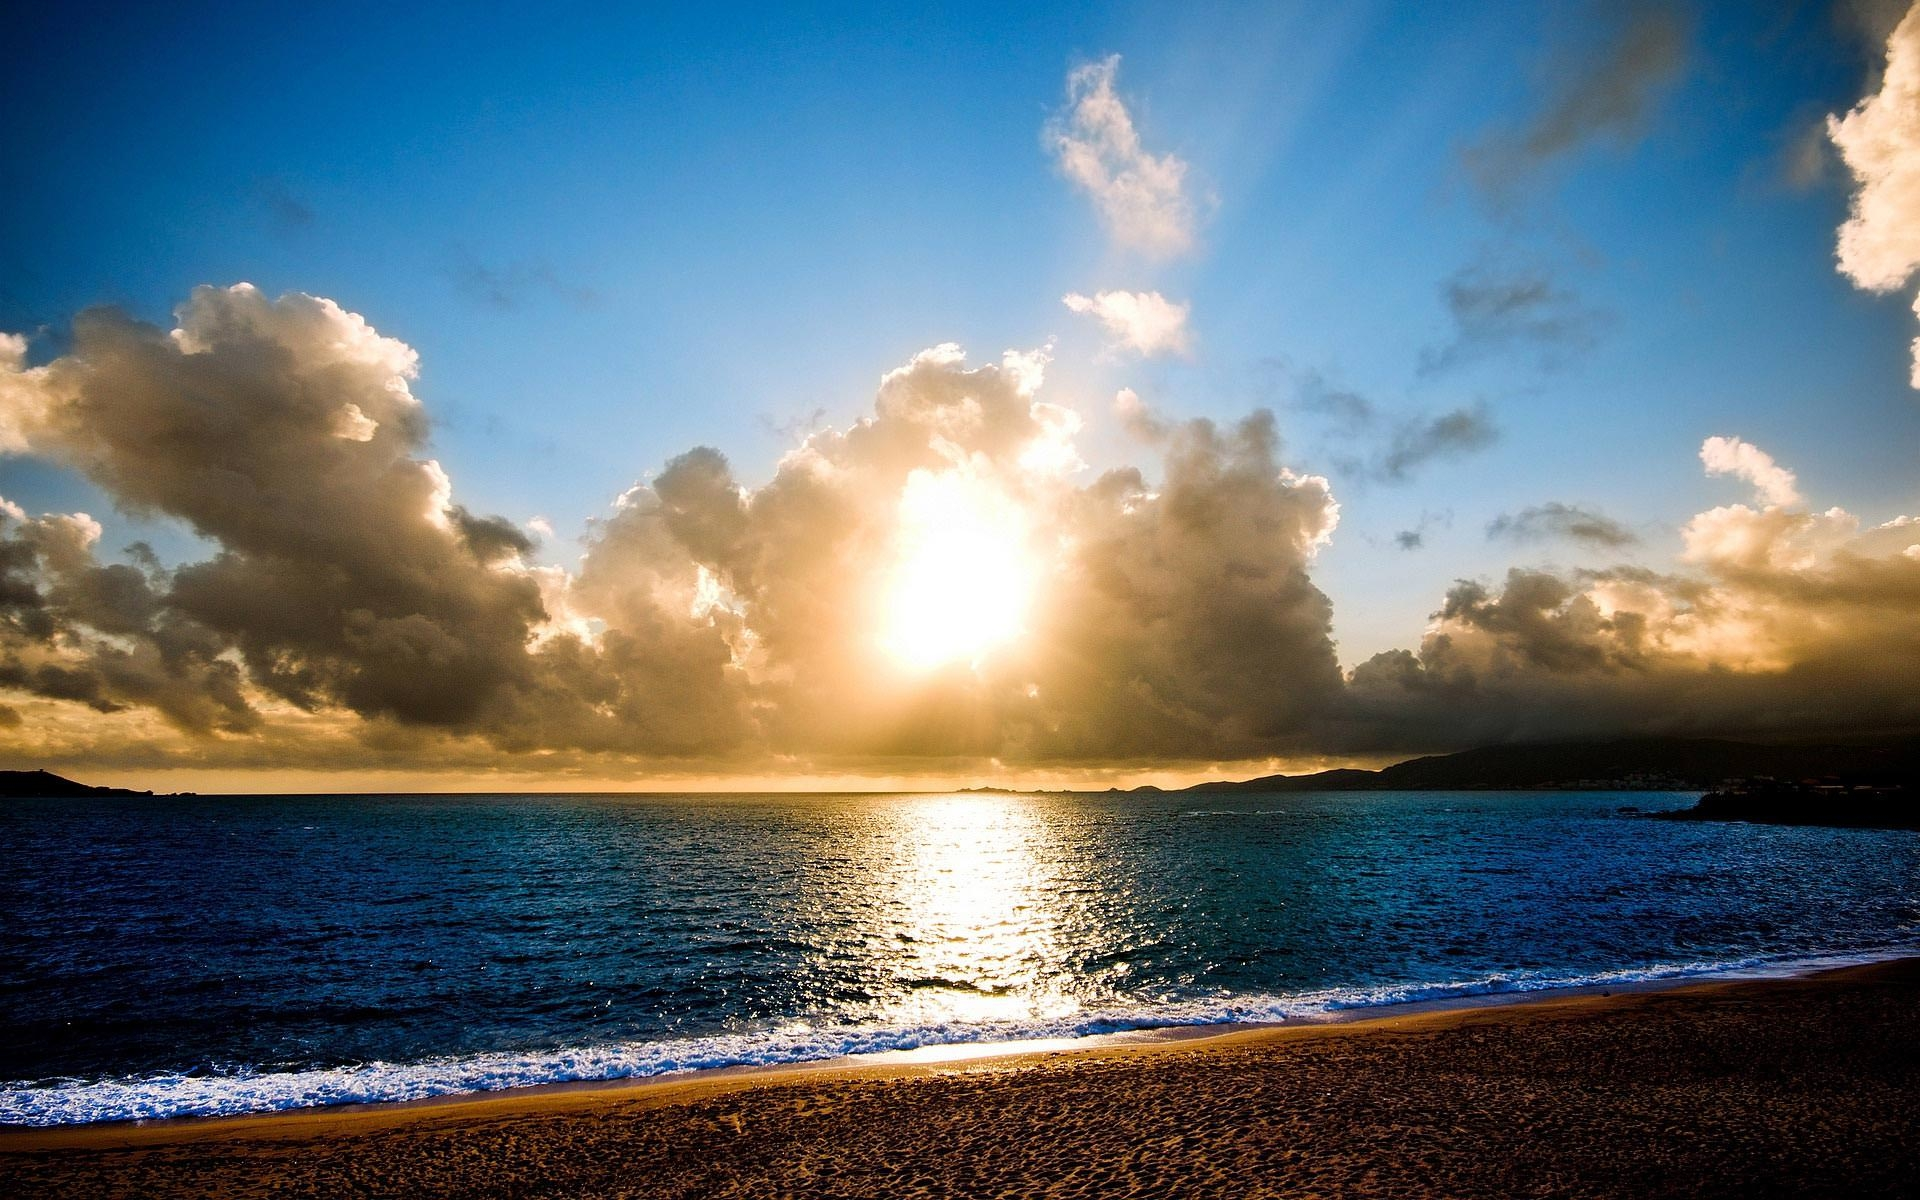 21 Beach Sunrise Wallpapers Backgrounds Images FreeCreatives